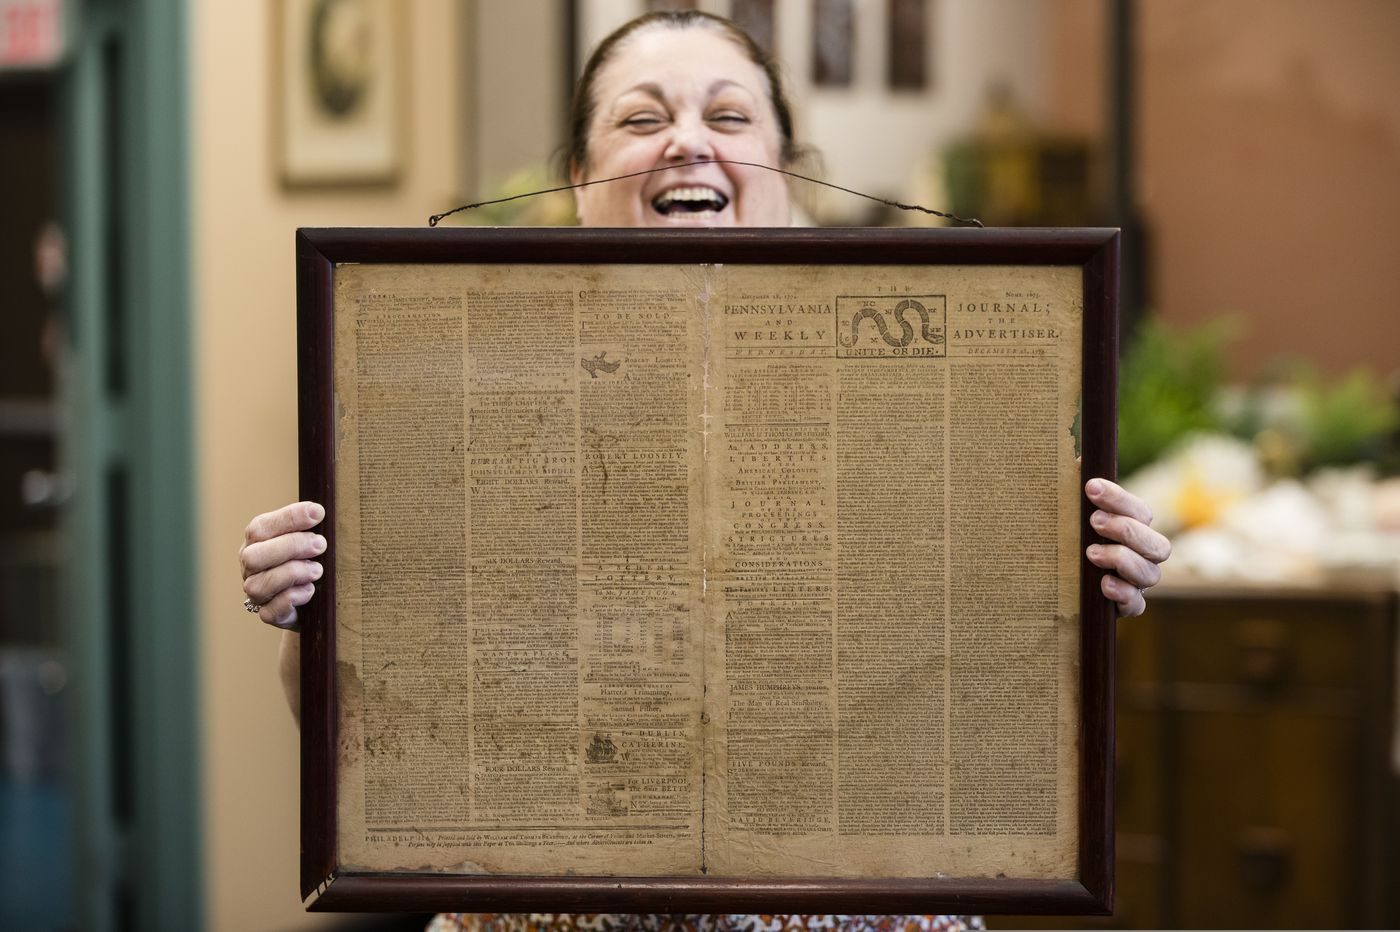 Original 1774 Phila. newspaper, found at Goodwill, heads to library